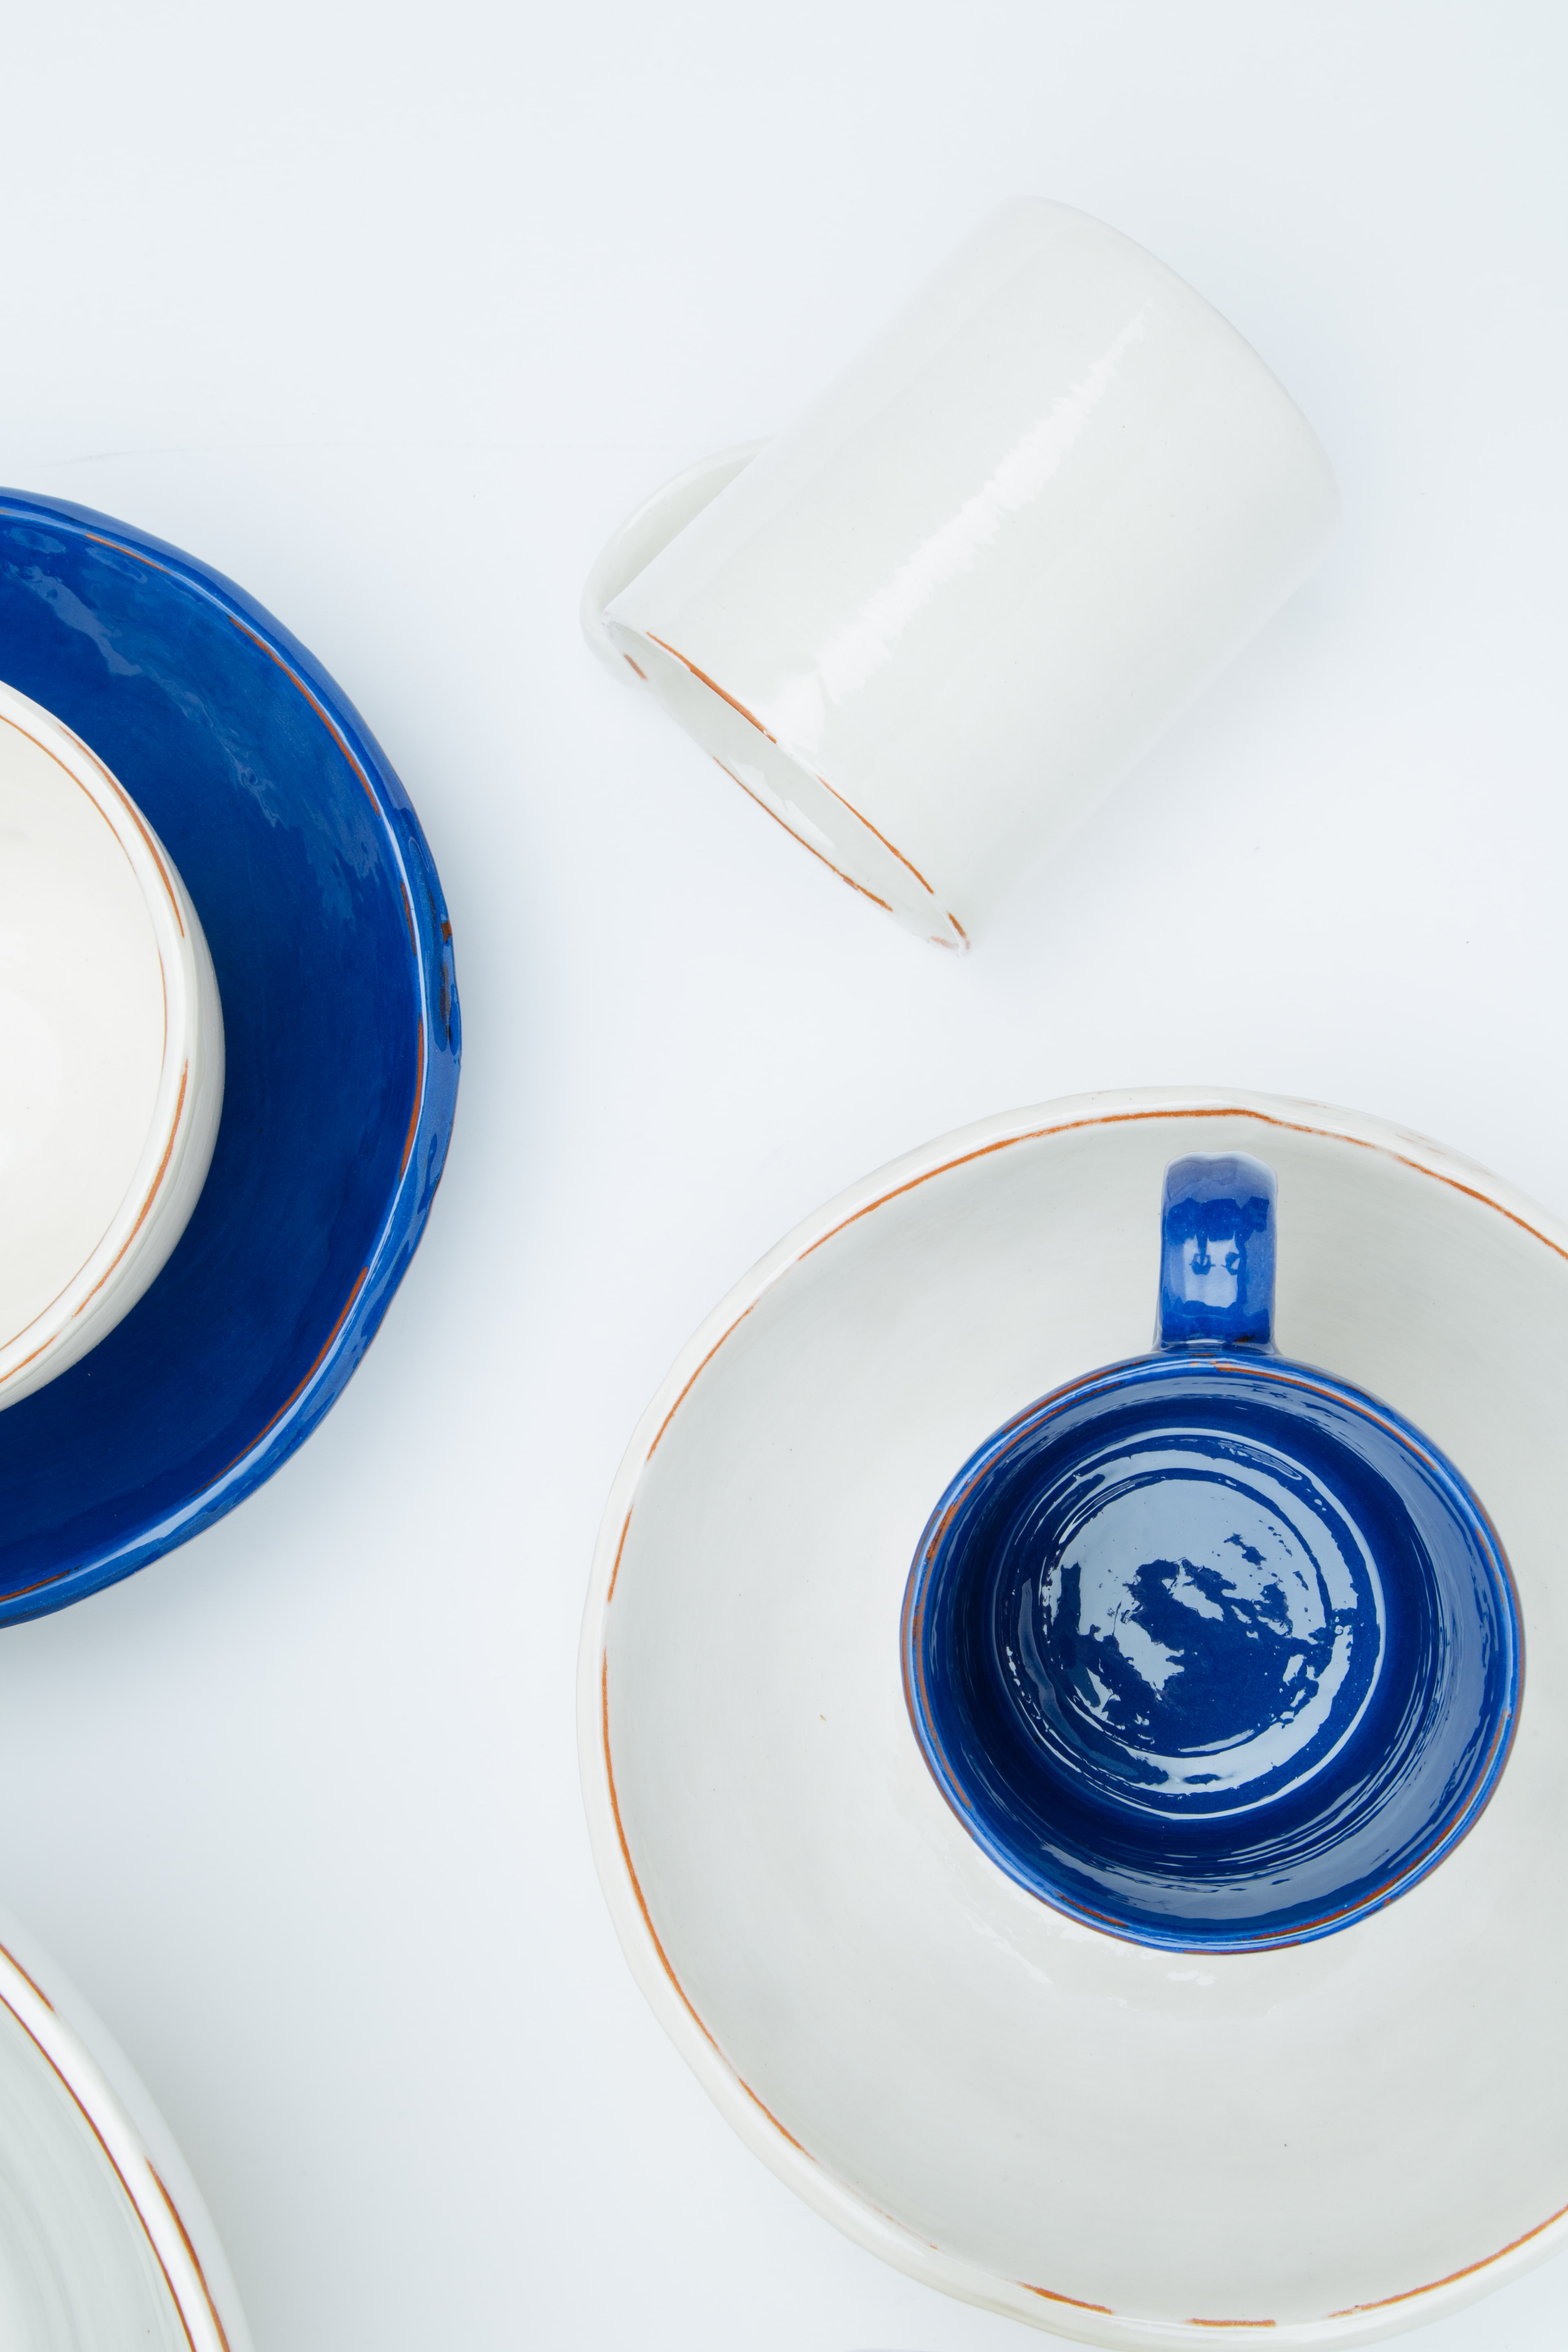 white and blue ceramic teacup and saucer